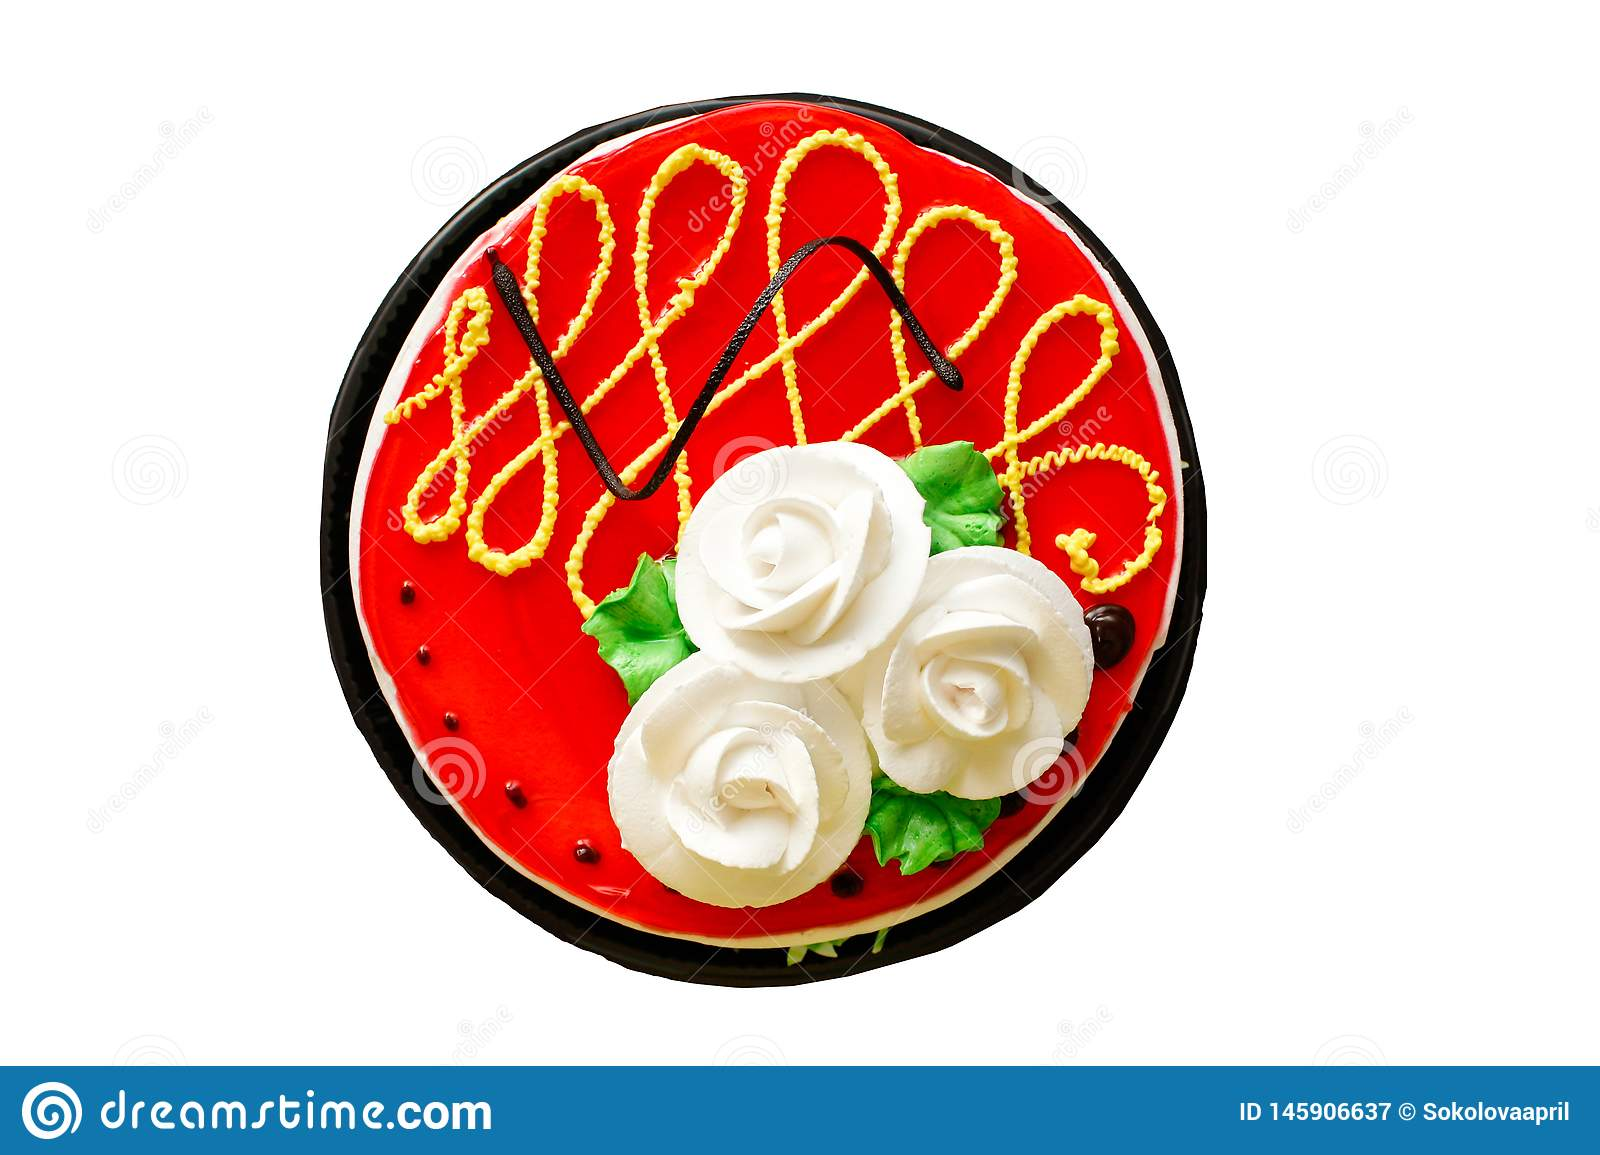 Happy Birthday Cake On White Background.Romantic Love